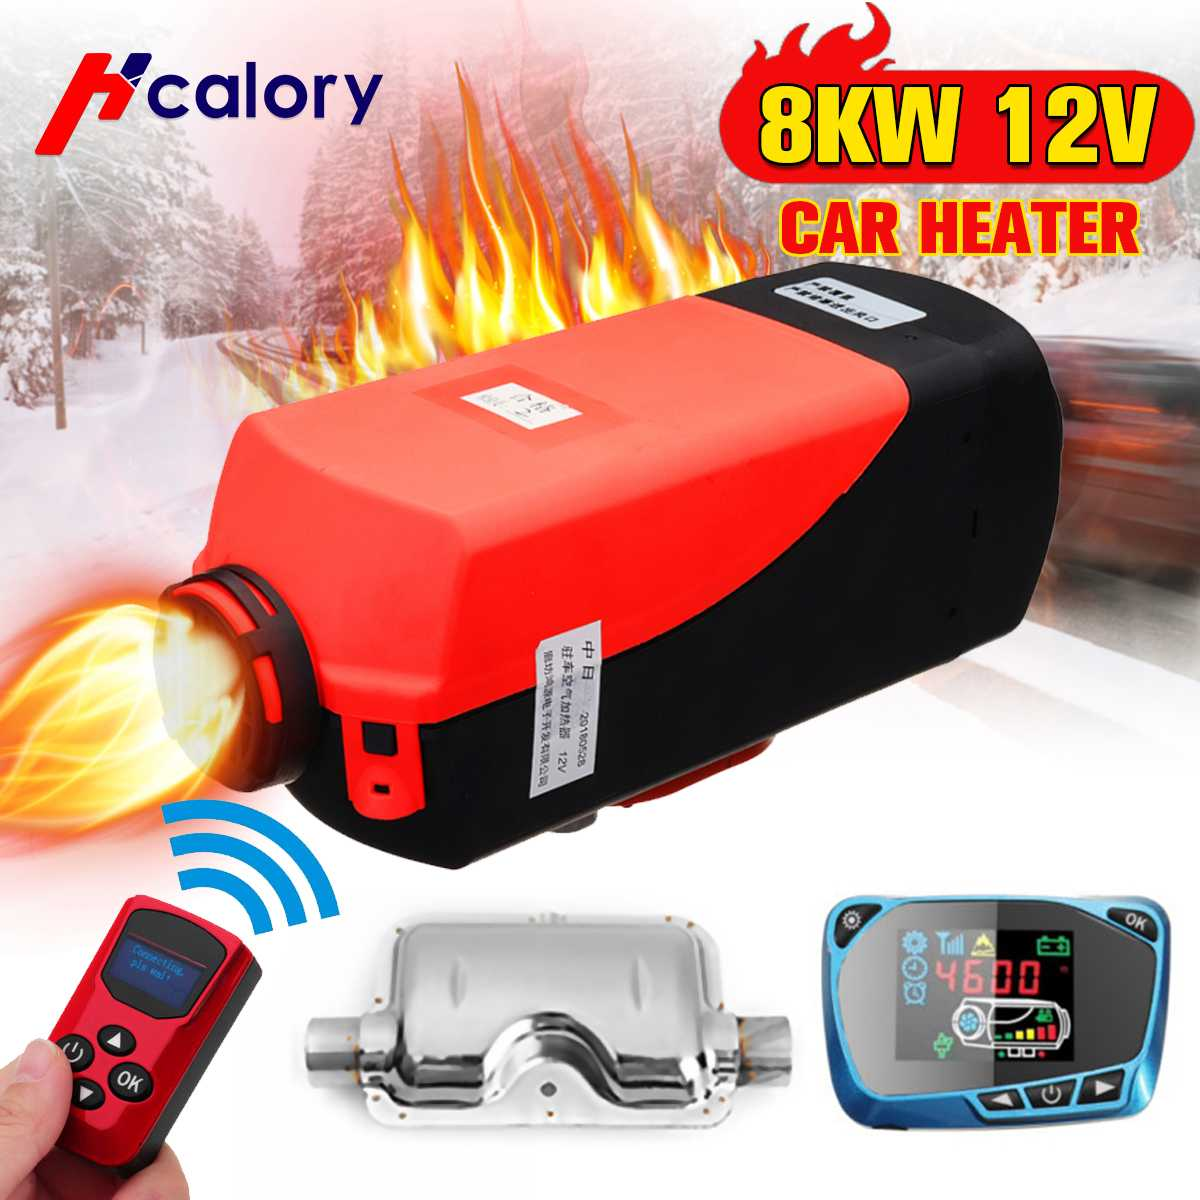 8000W Air diesels Heater 8KW 12V Car Heater For Trucks Motor-Homes Boats Bus +LCD Monitor Switch +Remote Control + Silencer8000W Air diesels Heater 8KW 12V Car Heater For Trucks Motor-Homes Boats Bus +LCD Monitor Switch +Remote Control + Silencer